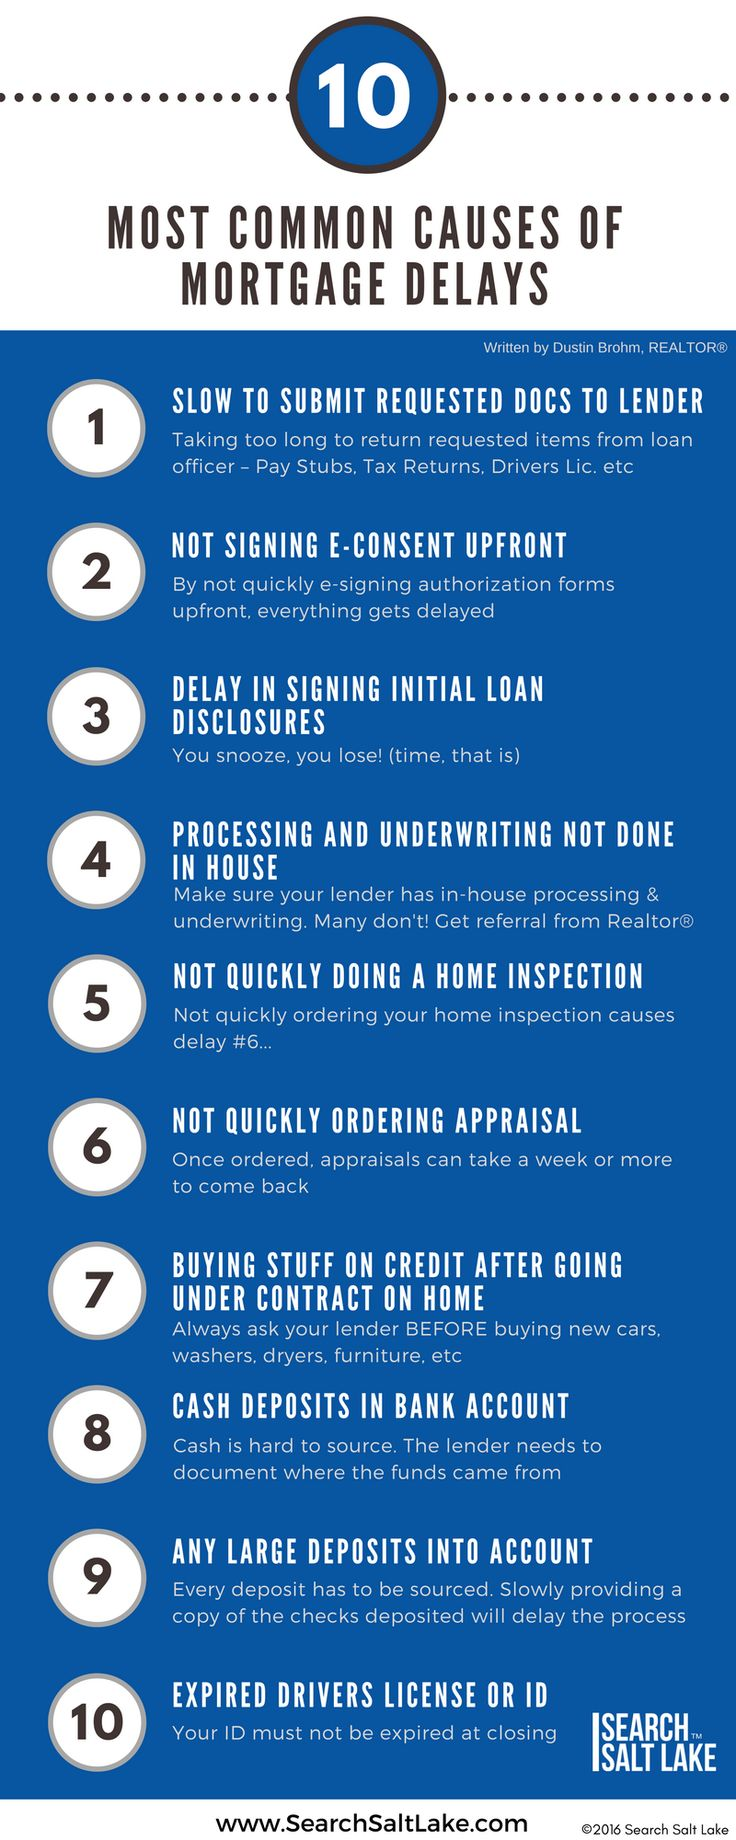 Top 10 Causes of Mortgage Delays | Make sure you know these before buying a home, to prevent any delays causing problems with your home purchase | Search Salt Lake